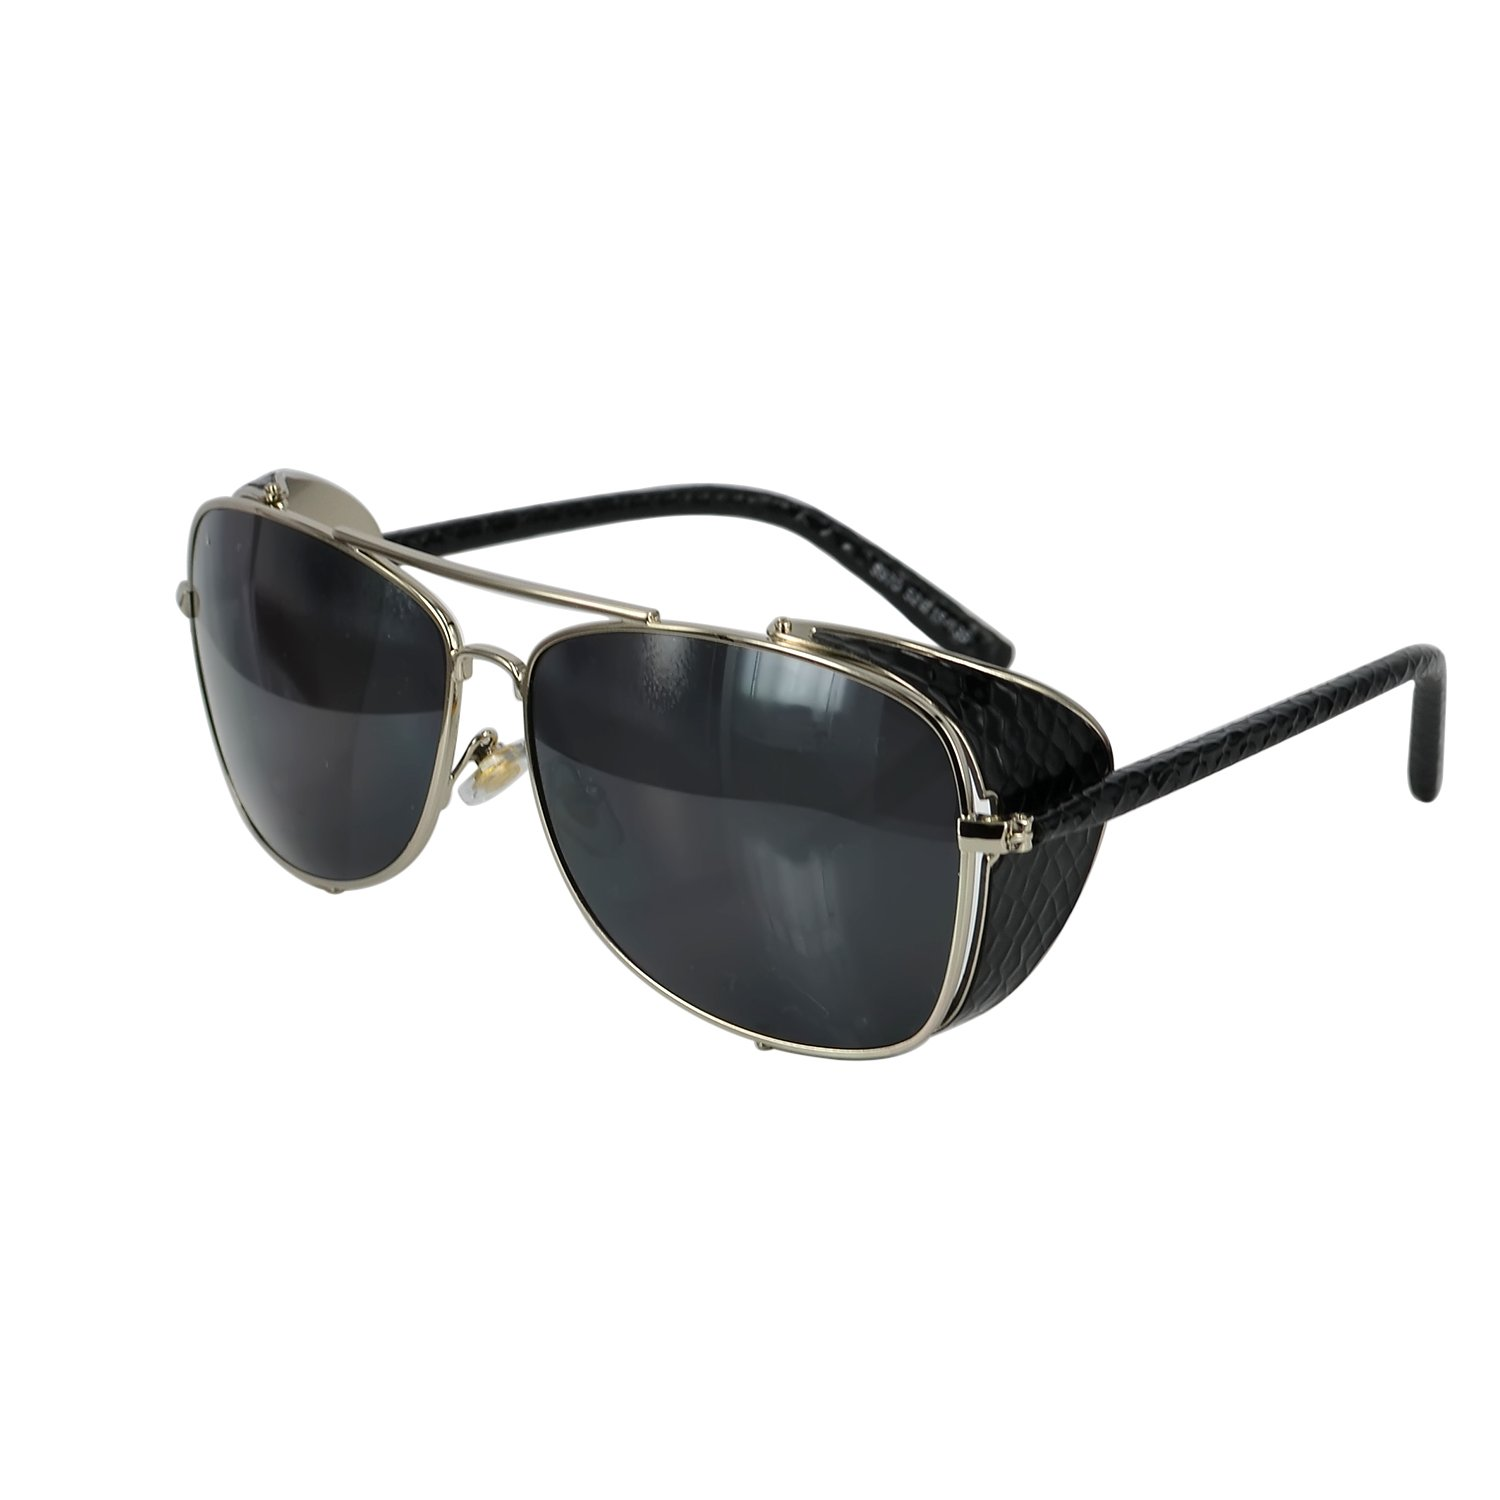 Ucspai Steampunk Sunglasses Goggles Silver Frame with Grey Lens